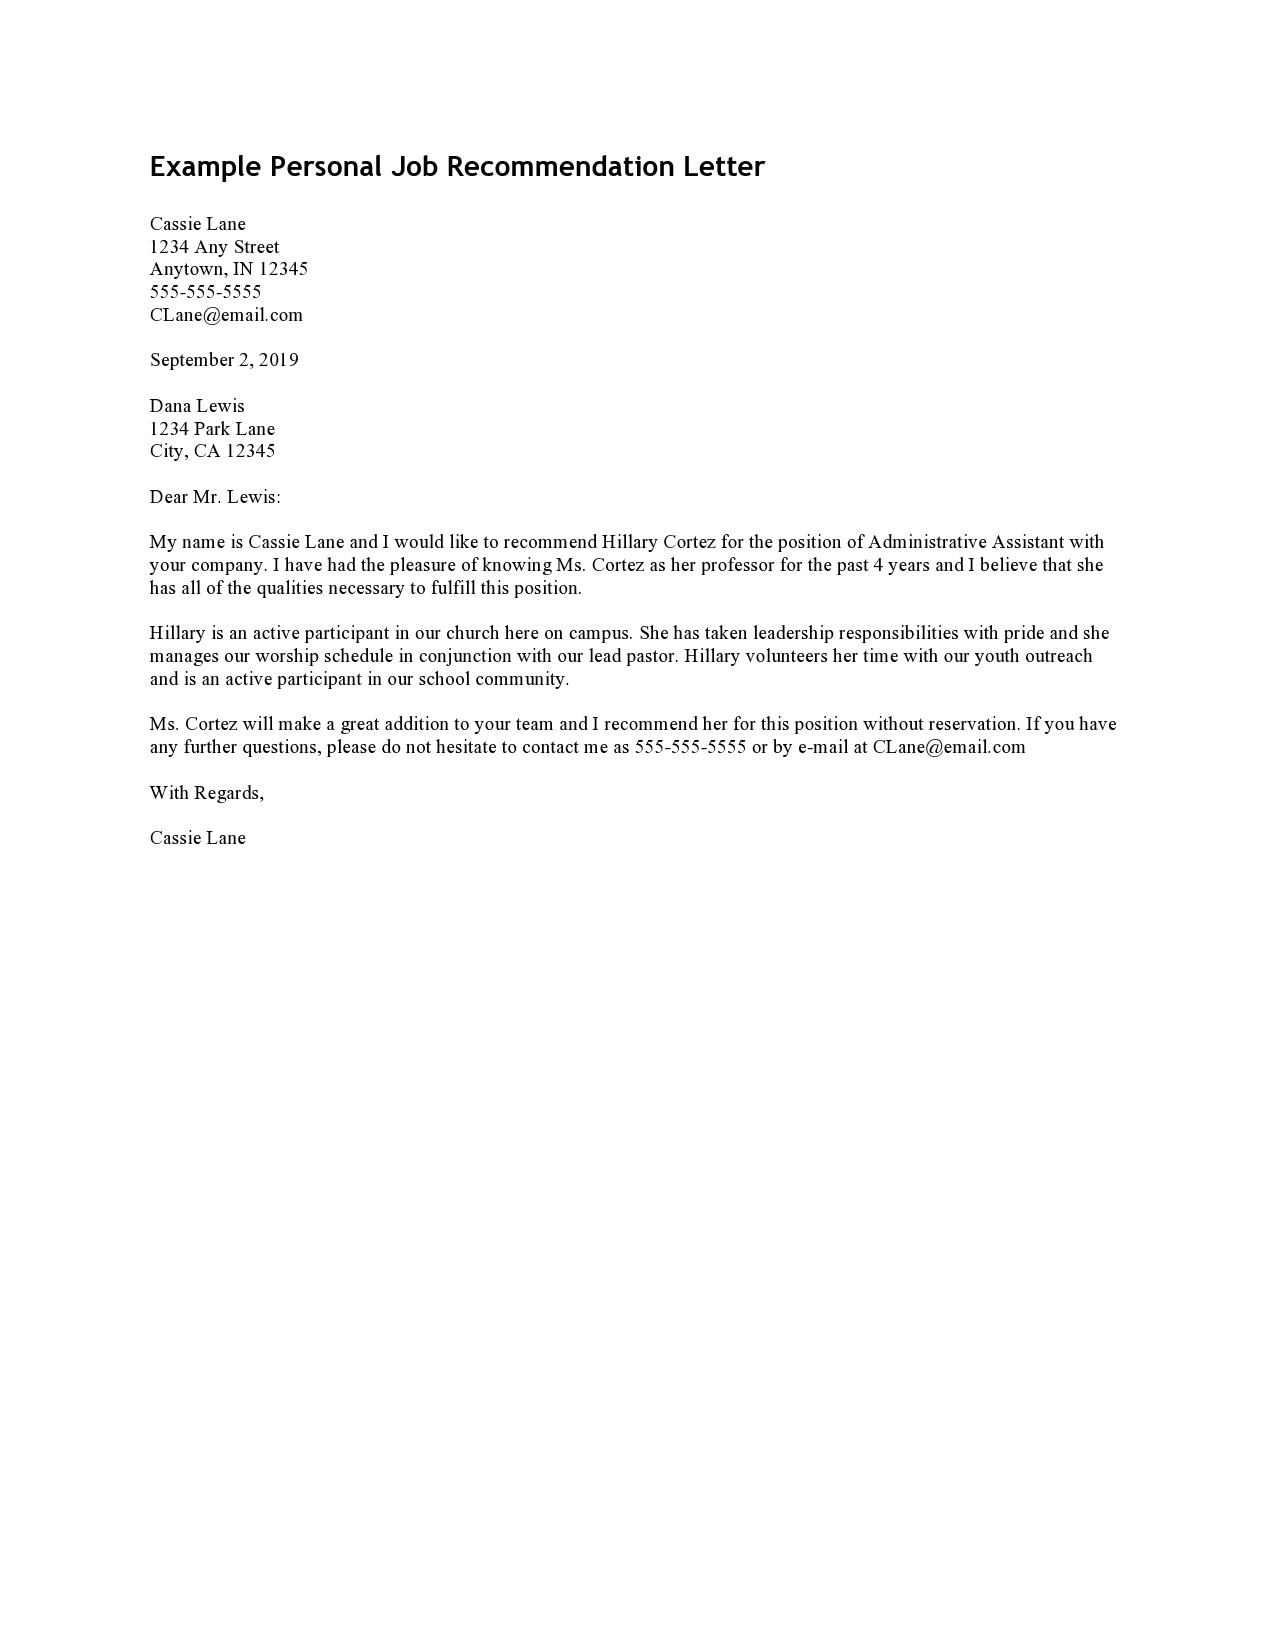 Free personal letter format 28